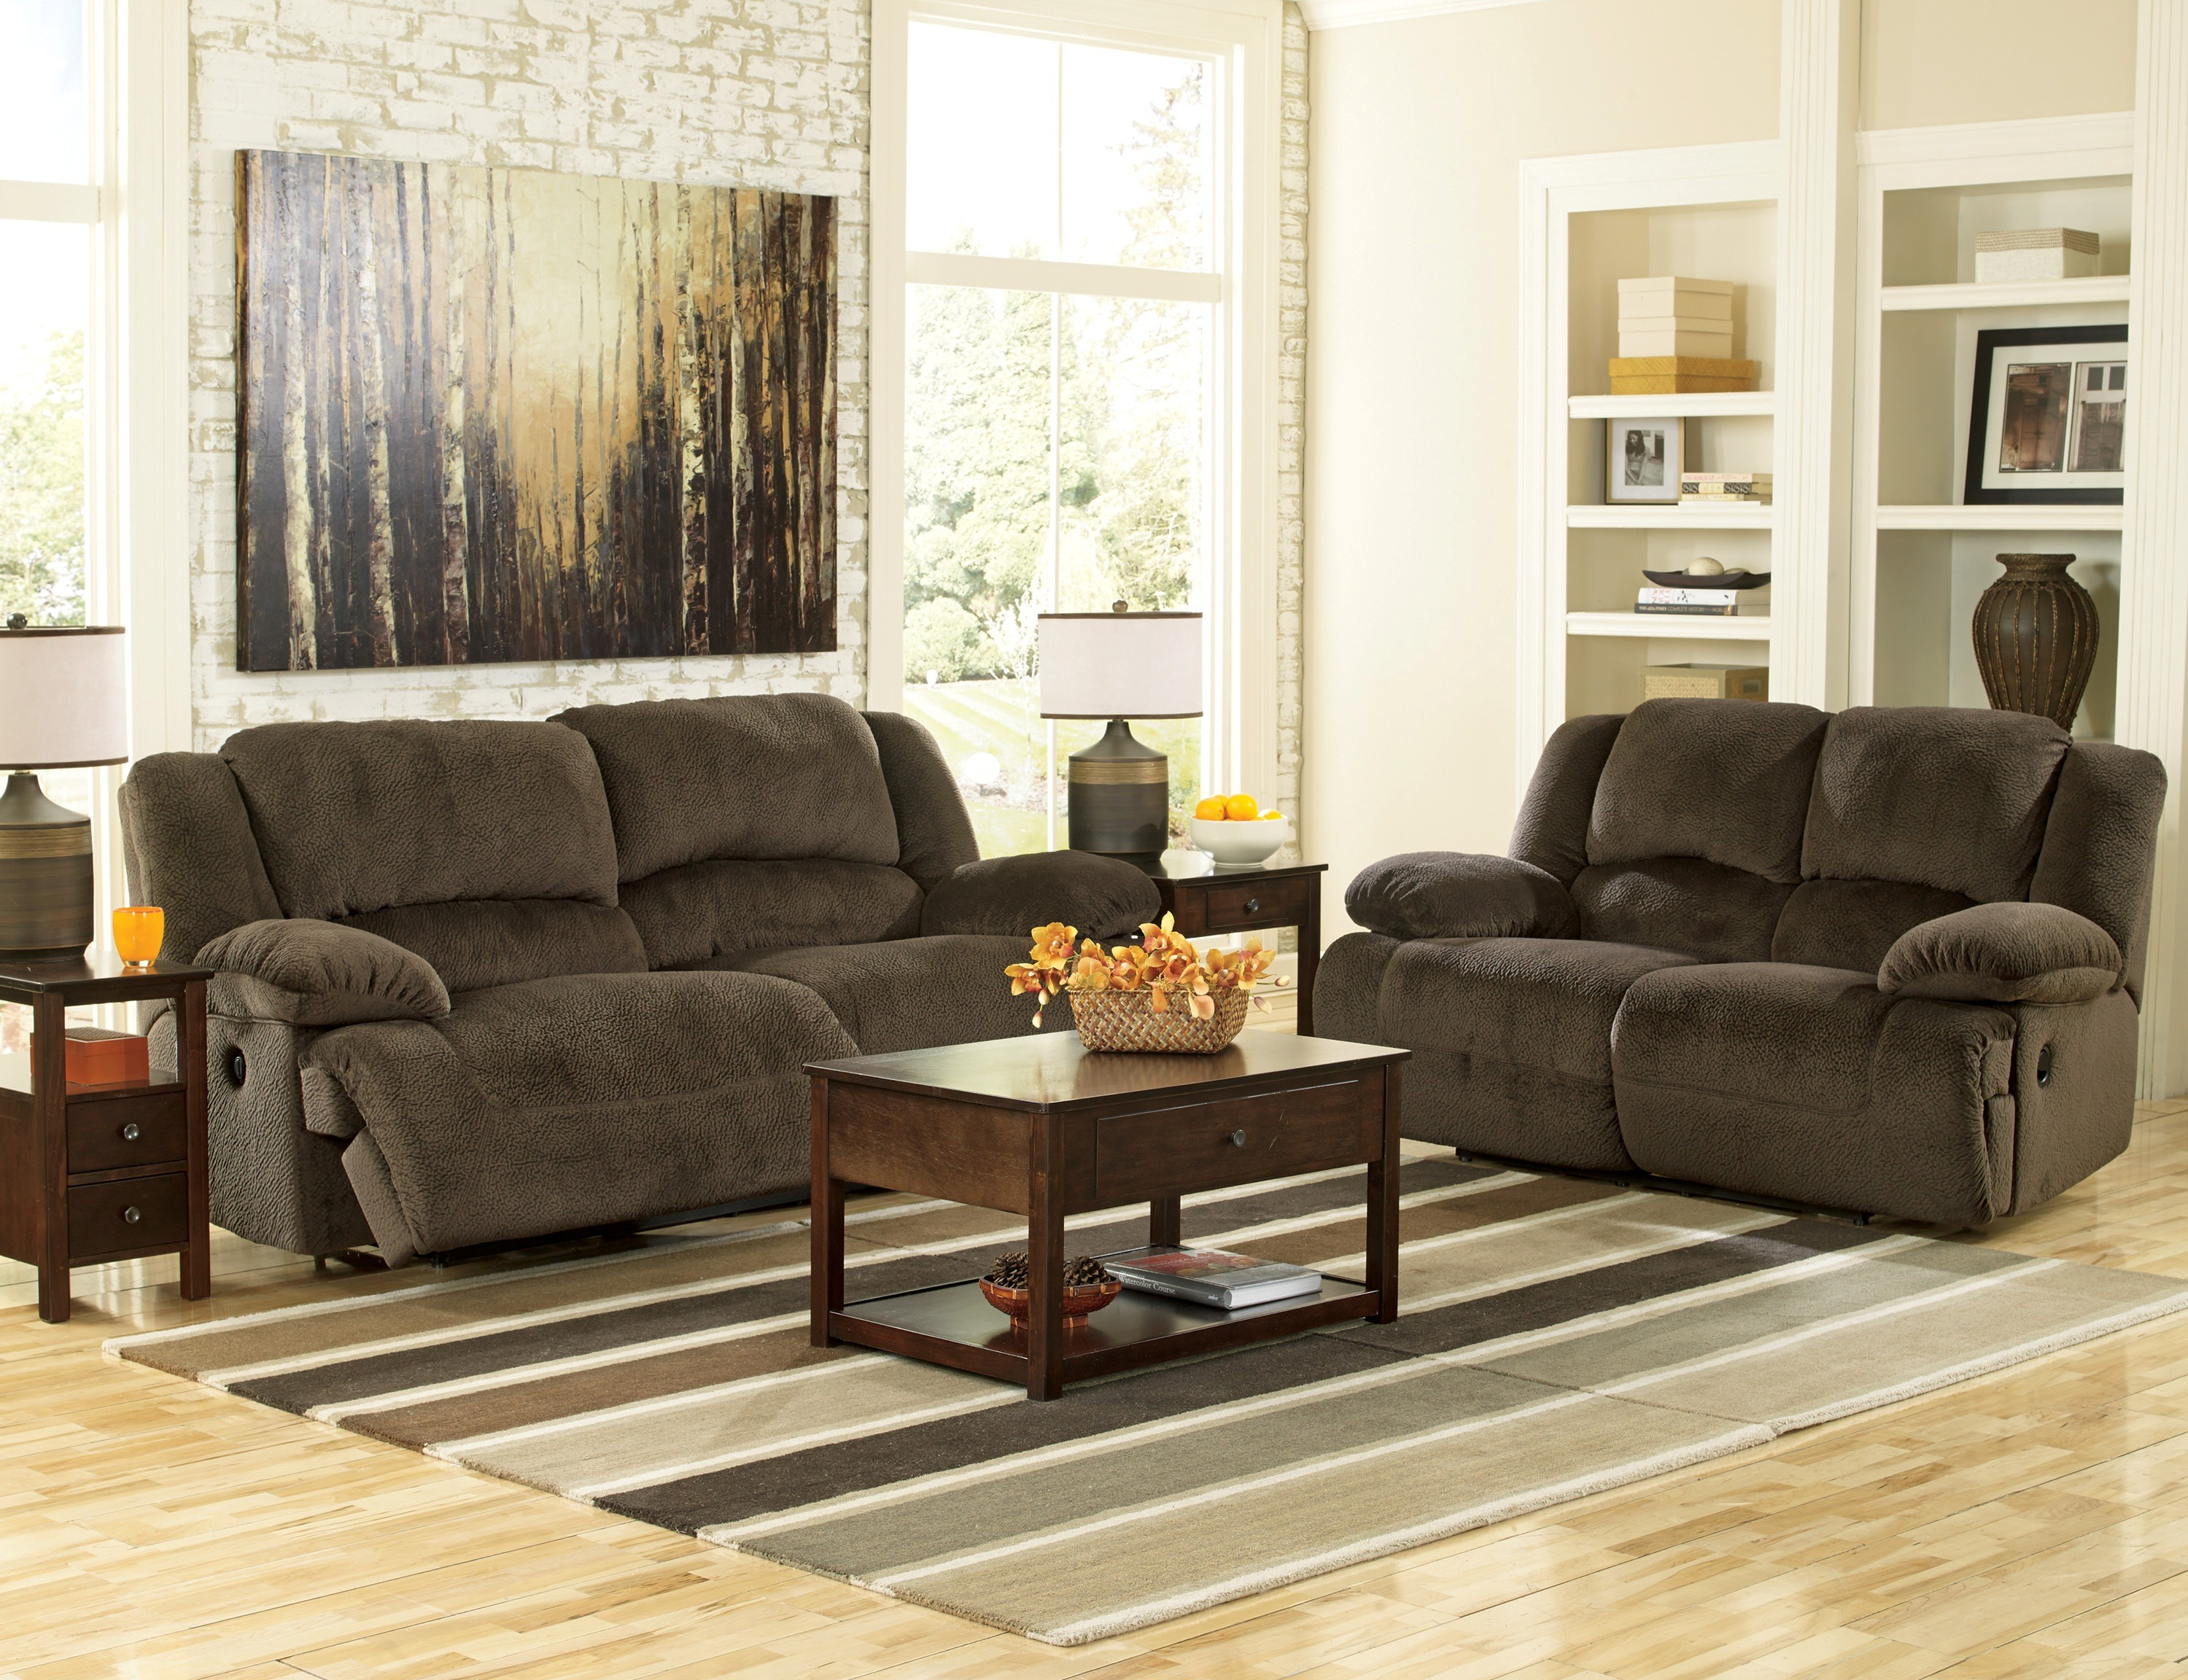 attractive furniture ideas flooring wood brown breathtaking studded ca and loveseat chair living sofa appealing curtain chairs laminate stunning set sets accent walmart room in glamorous wayfair